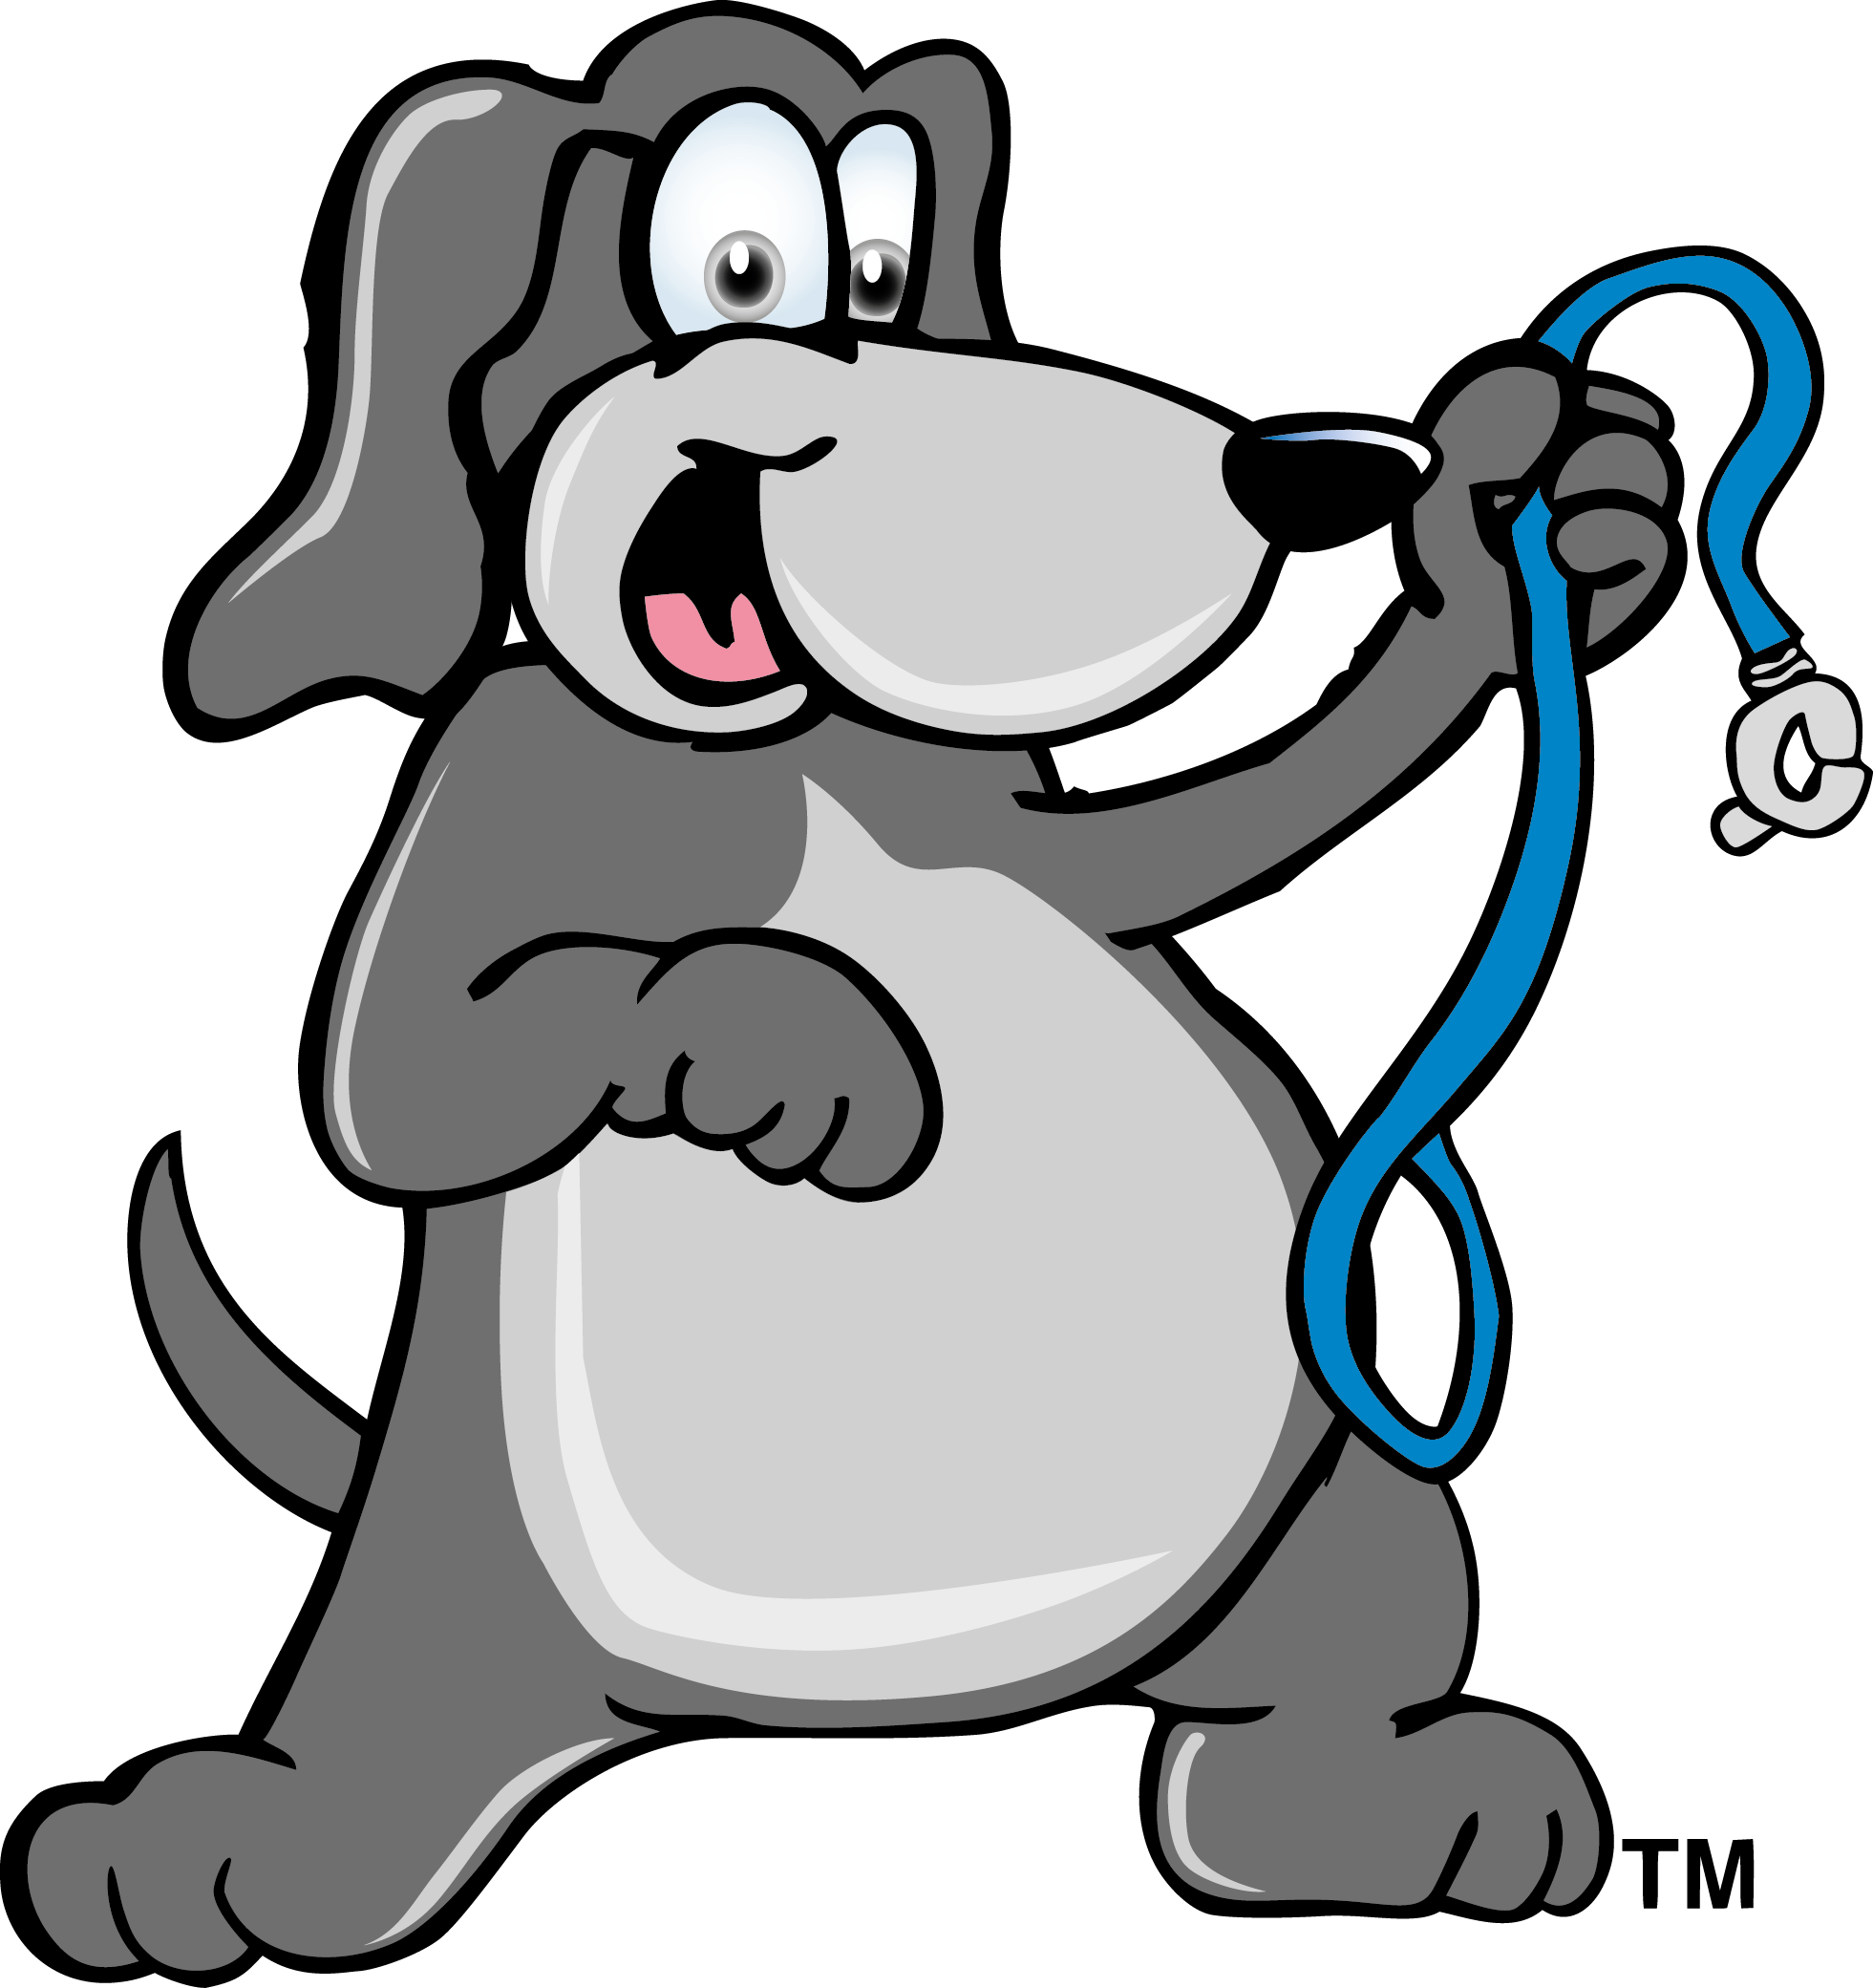 Fat dog with a. Pet clipart common animal